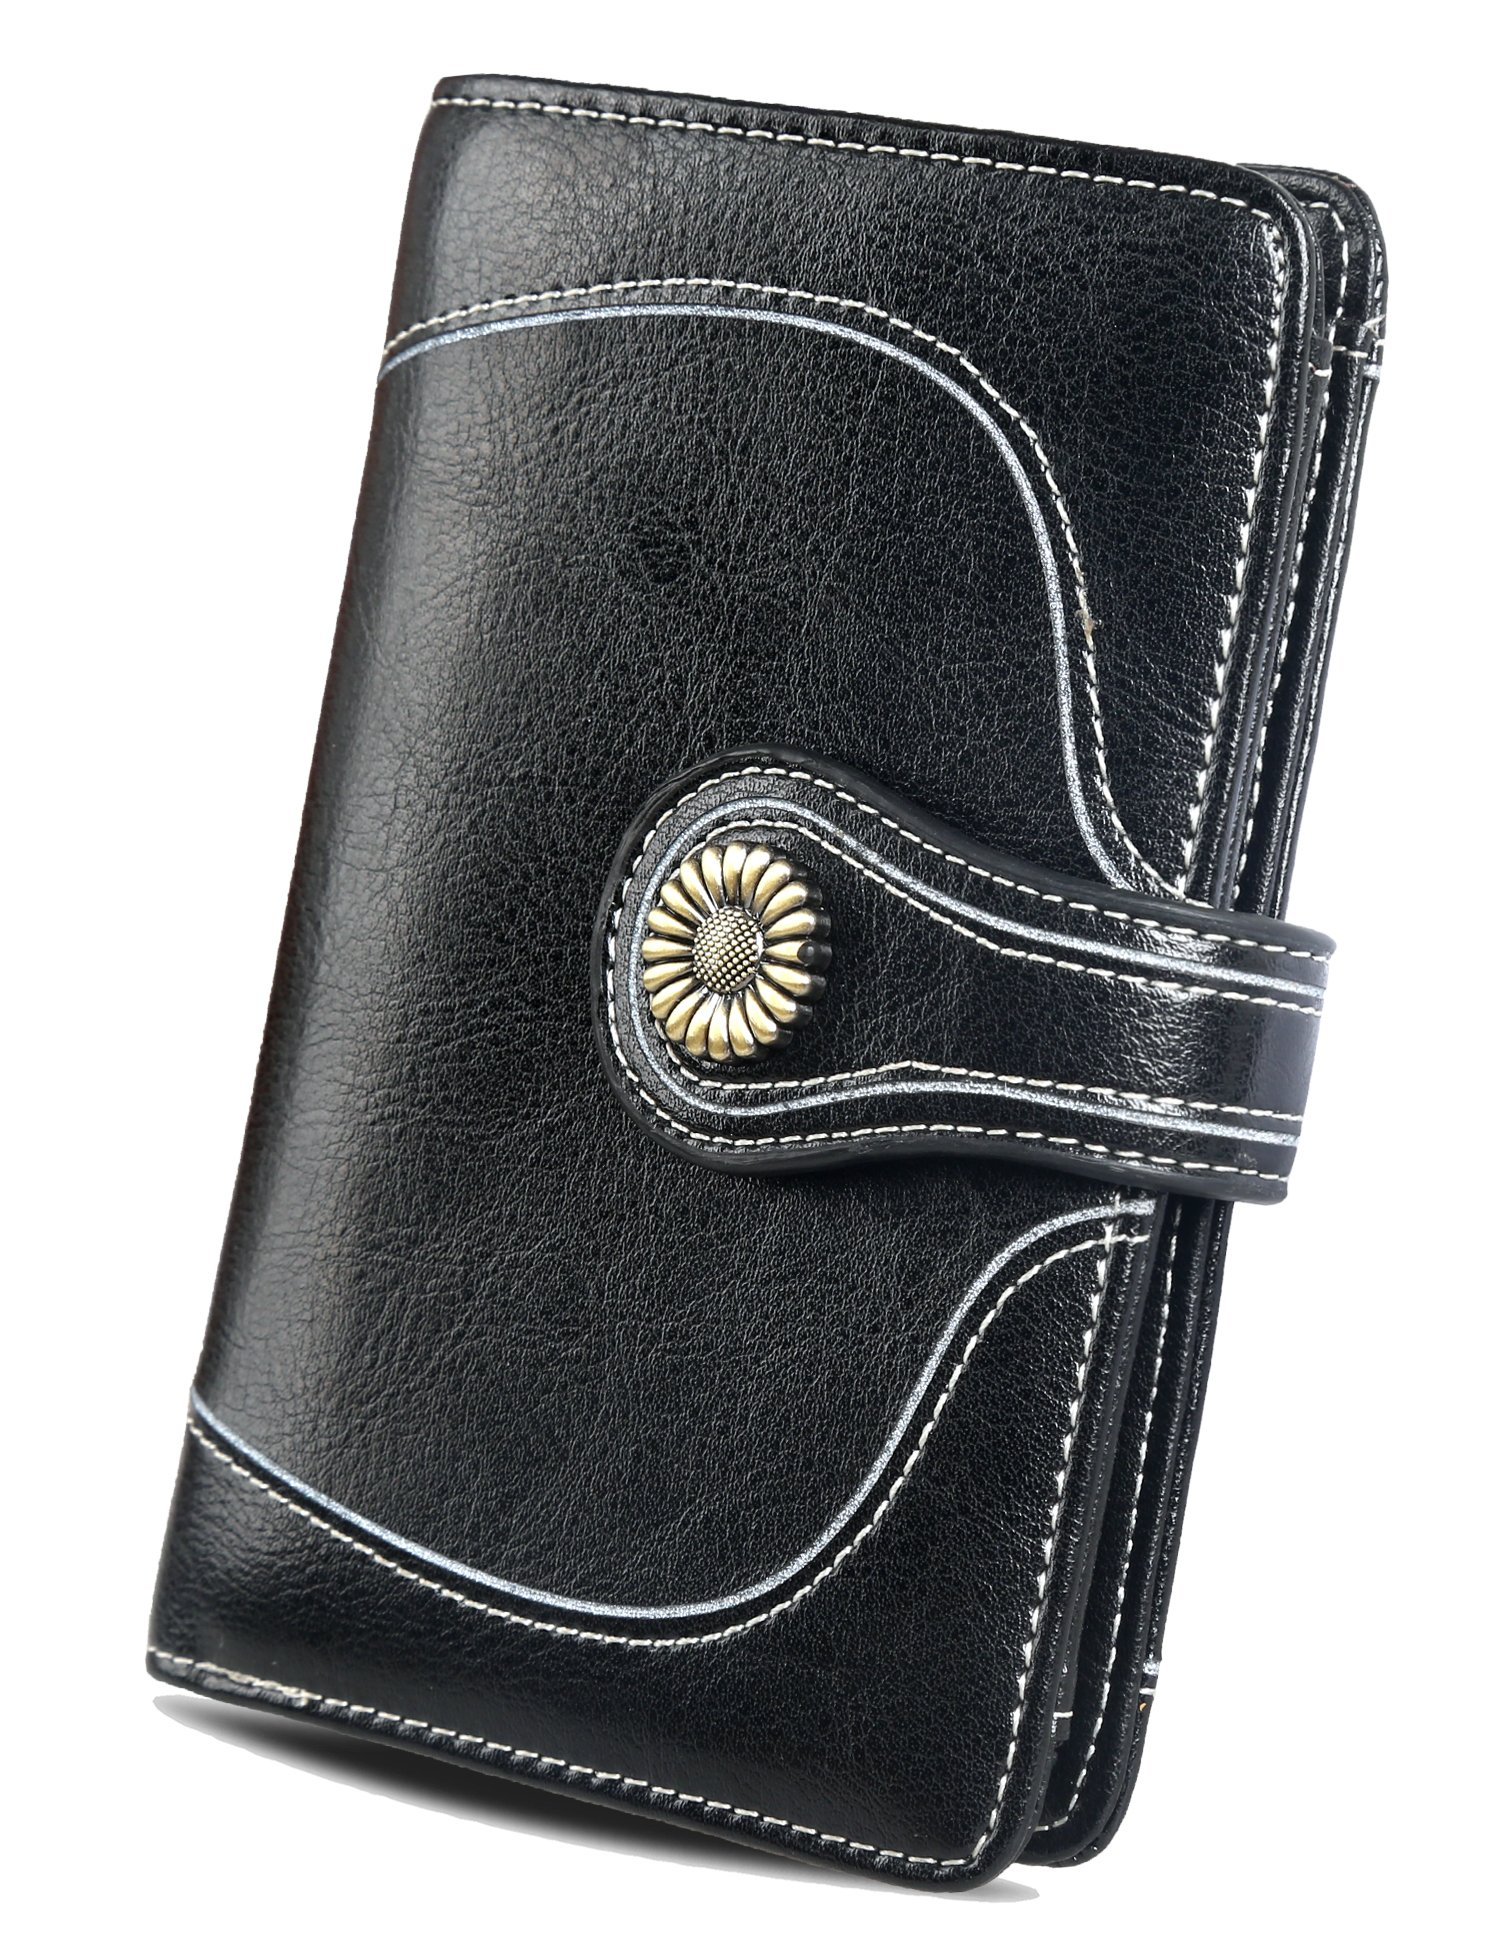 Womens RFID Wallets Leather Small Wallet Card Case Ladies Purse With ID Window